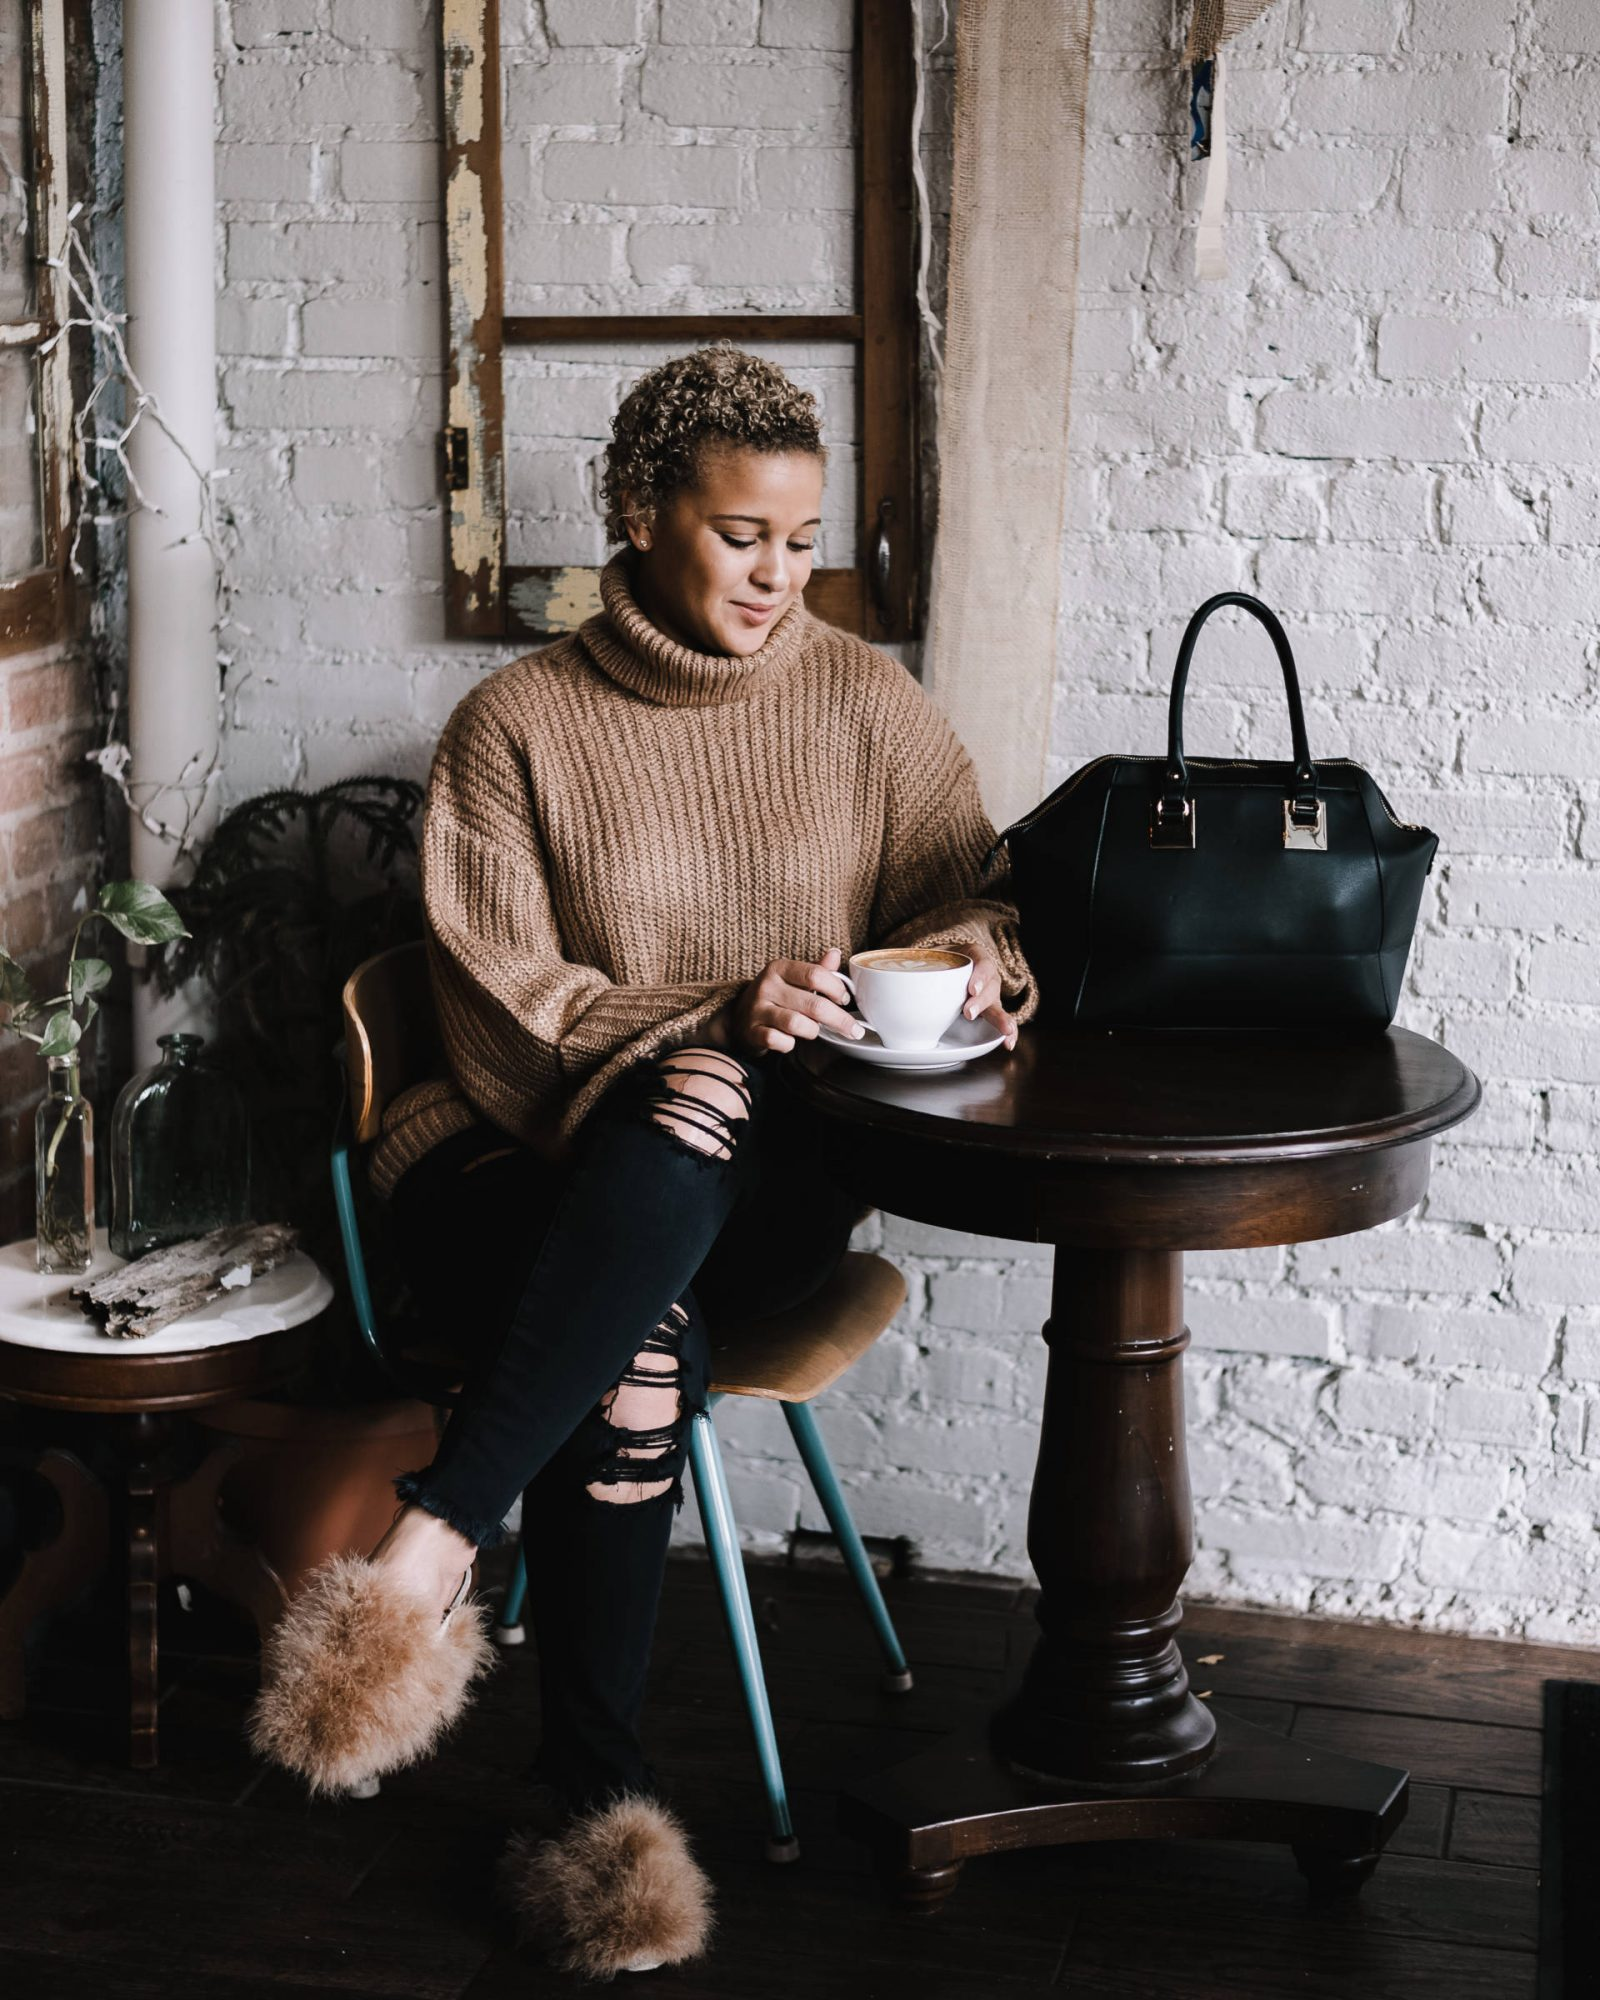 Styling a Camel Sweater for a Fall Morning